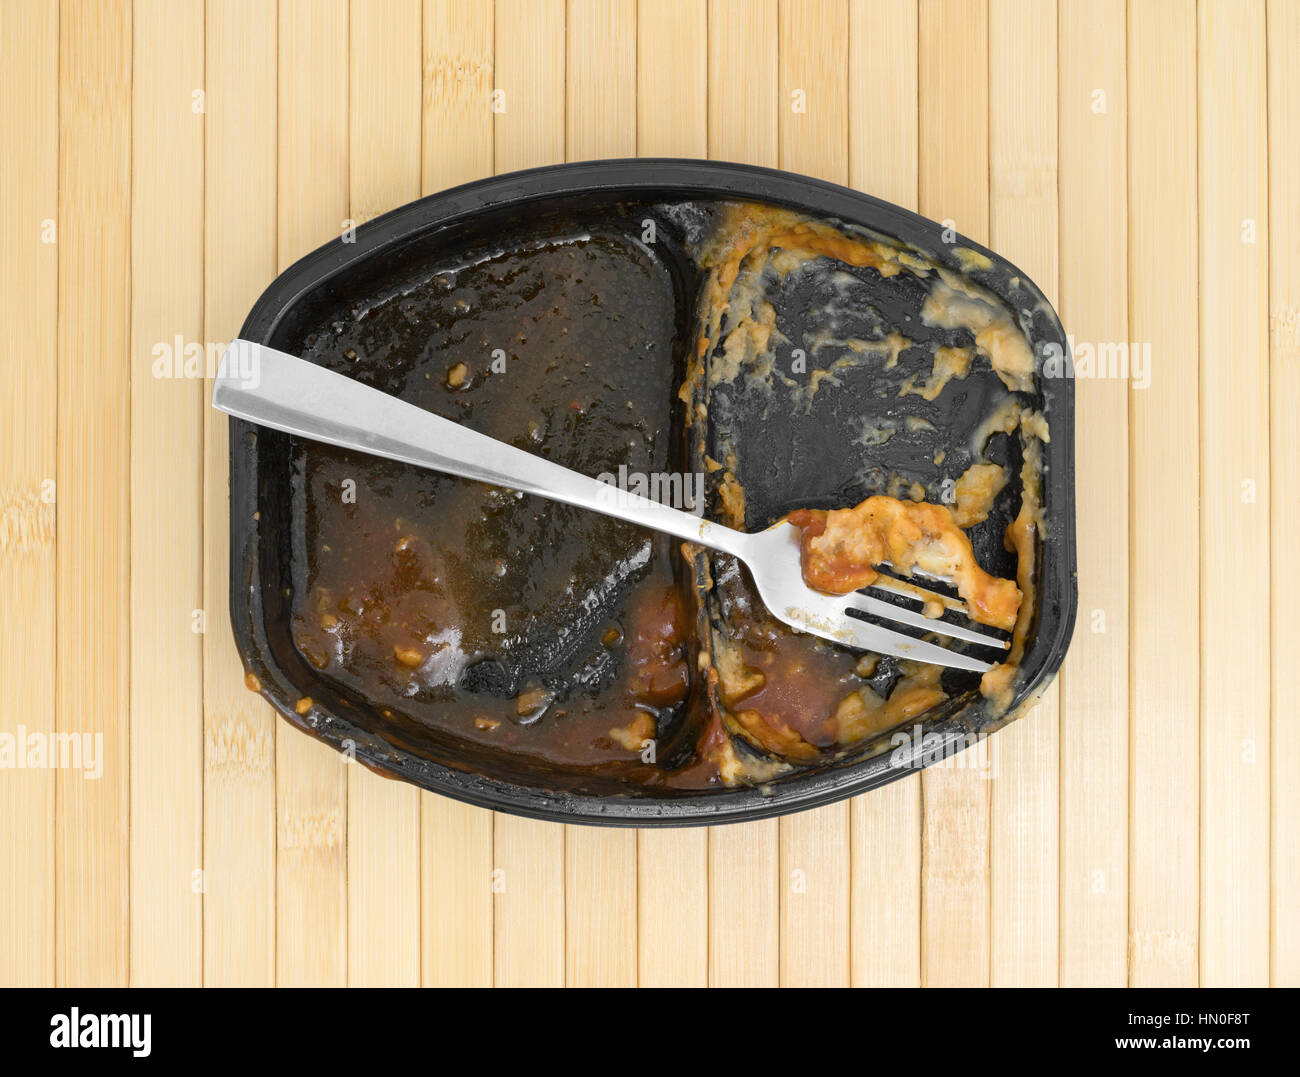 Top view of a finished barbecue and potato TV dinner with a fork in the tray atop a wood place mat. - Stock Image